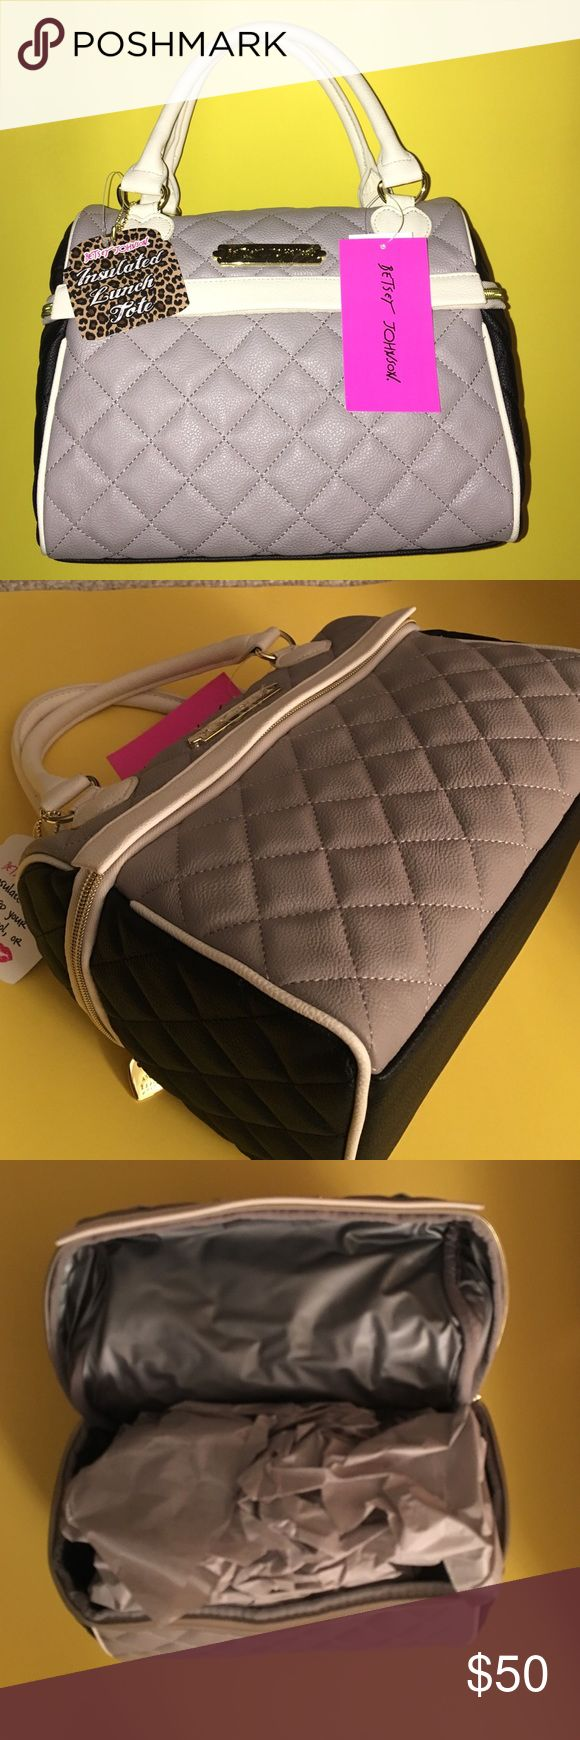 💋Speedy LUNCH Satchel OFFICE TOTE lunchbox tote👜 👄BETSEY JOHNSON LUNCH TOTE -SPEEDY GRAY💕 - BBLT075 🚌🍴🍱🎒👝👑💋SATCHEL NEW WITH TAGS 🚌🍴🍱🎒👝👑💋whether at school or work take your lunch with you in style.  Cooler bag Betsey Johnson Bags Satchels